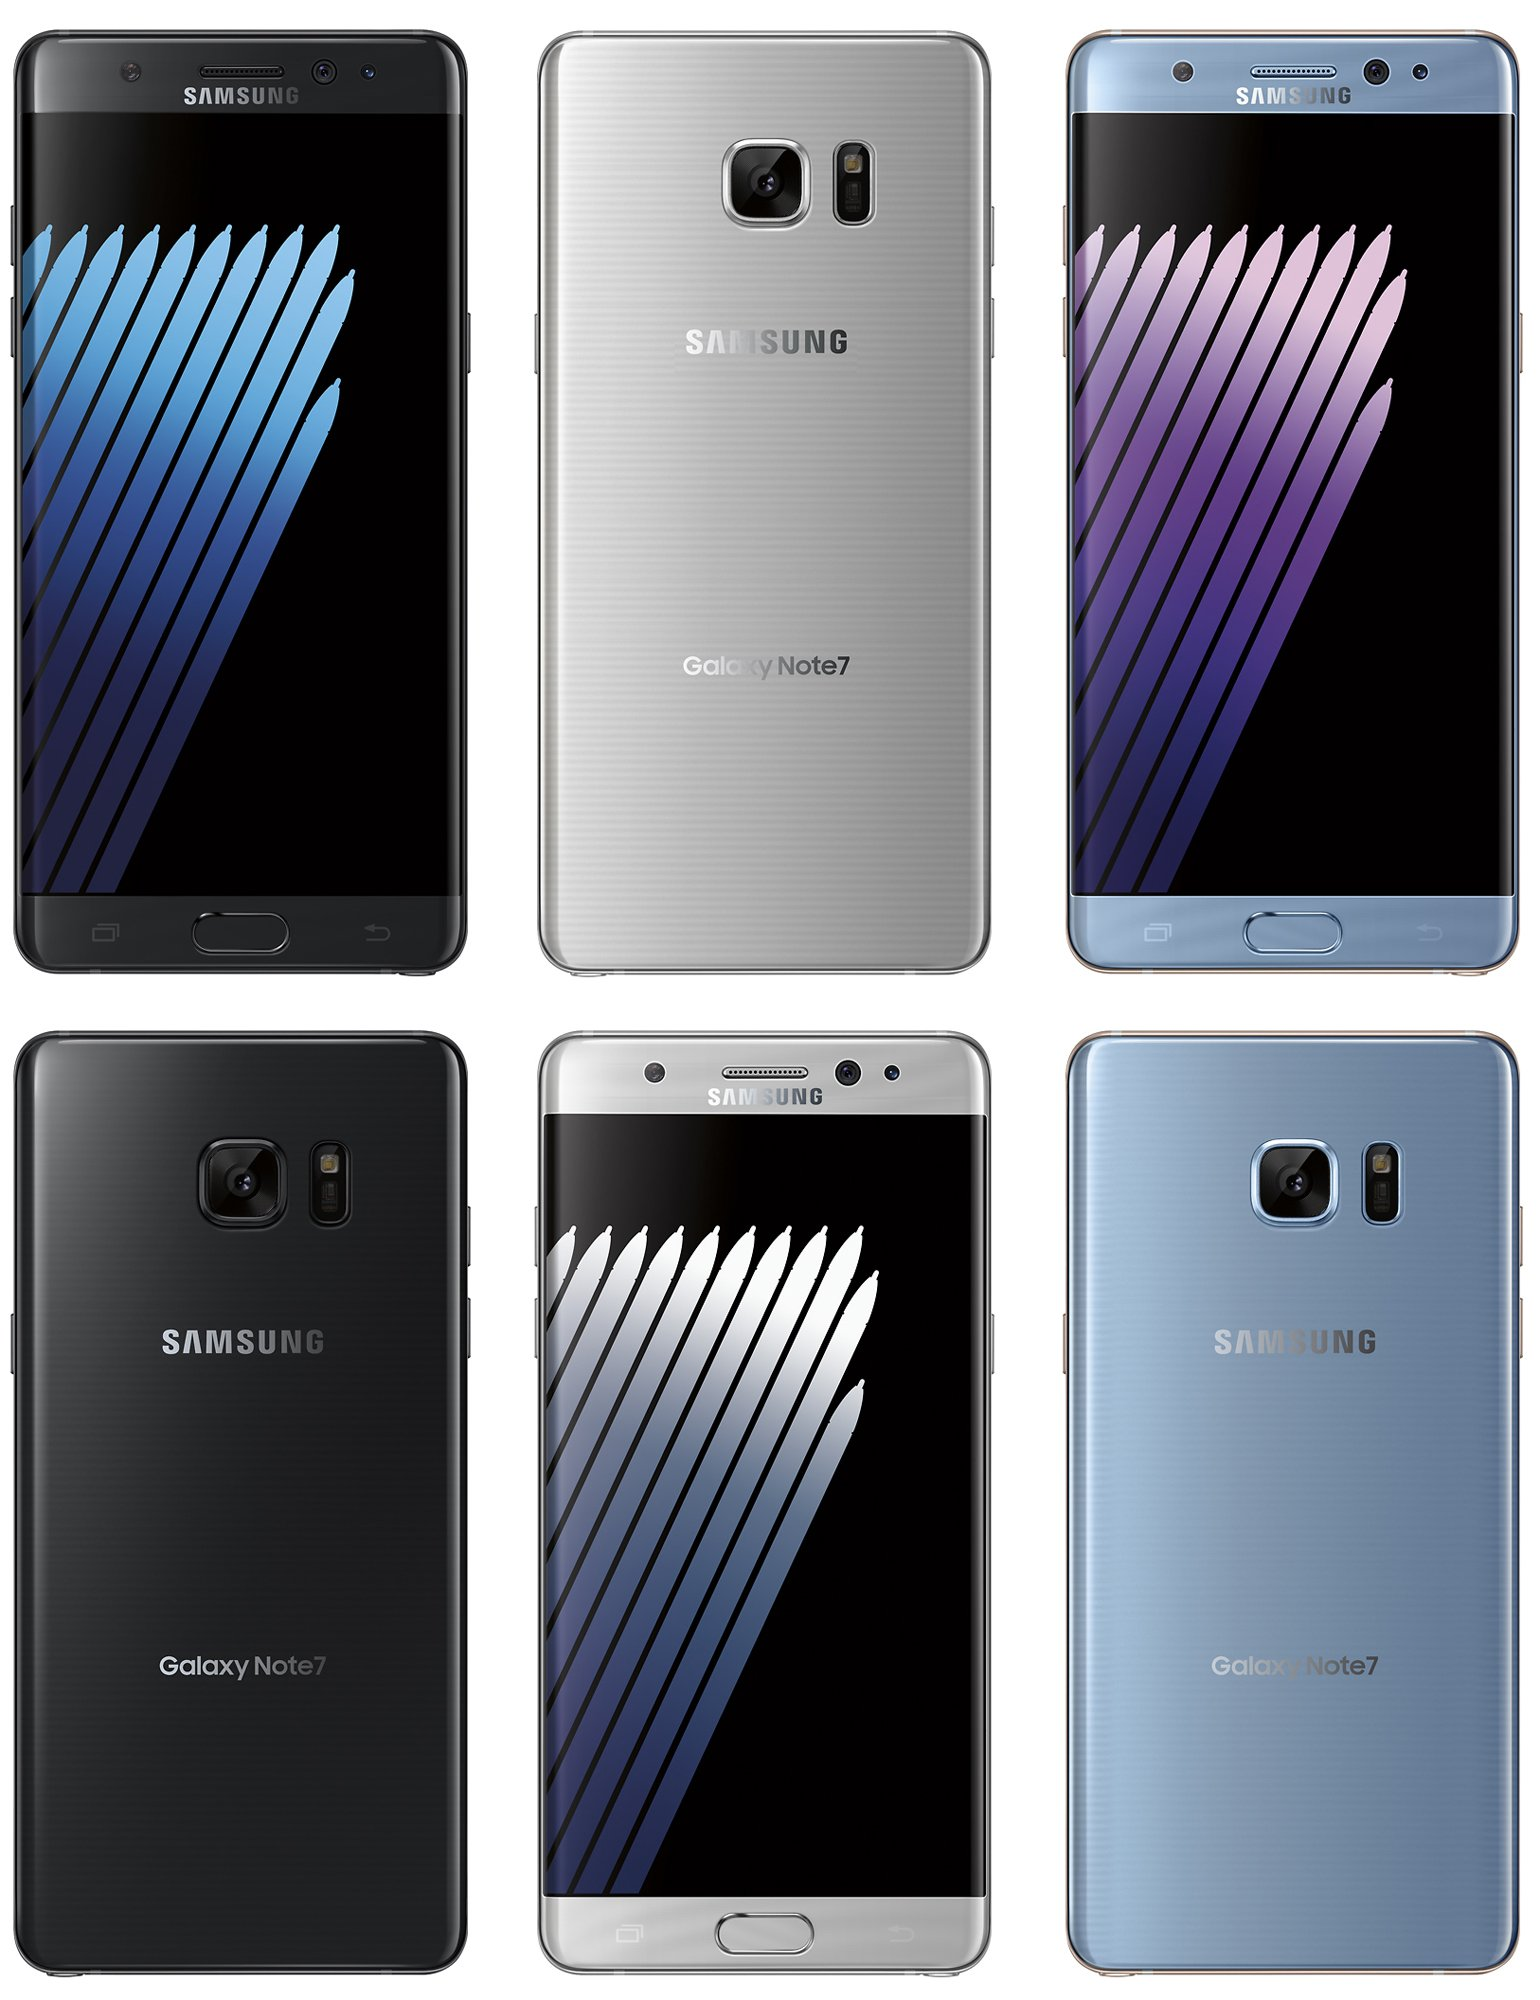 samsung galaxy note 7 encore une fuite d 39 images frandroid. Black Bedroom Furniture Sets. Home Design Ideas